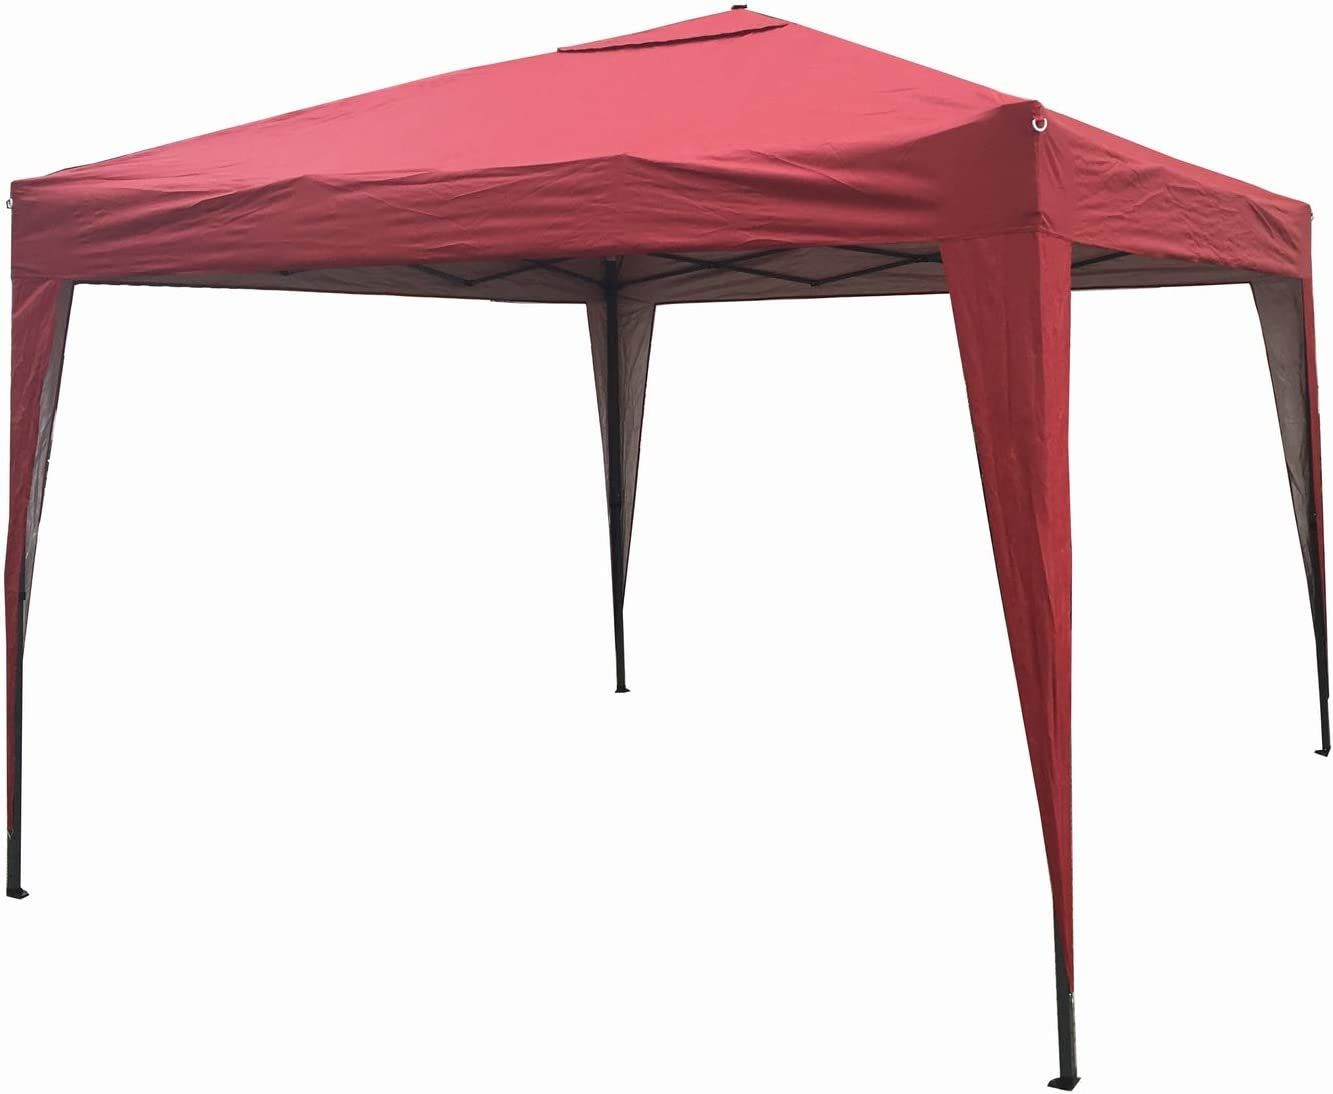 MCC 3x3m Pop up Gazebo Waterproof Outdoor Garden Marquee Canopy NS (Red)